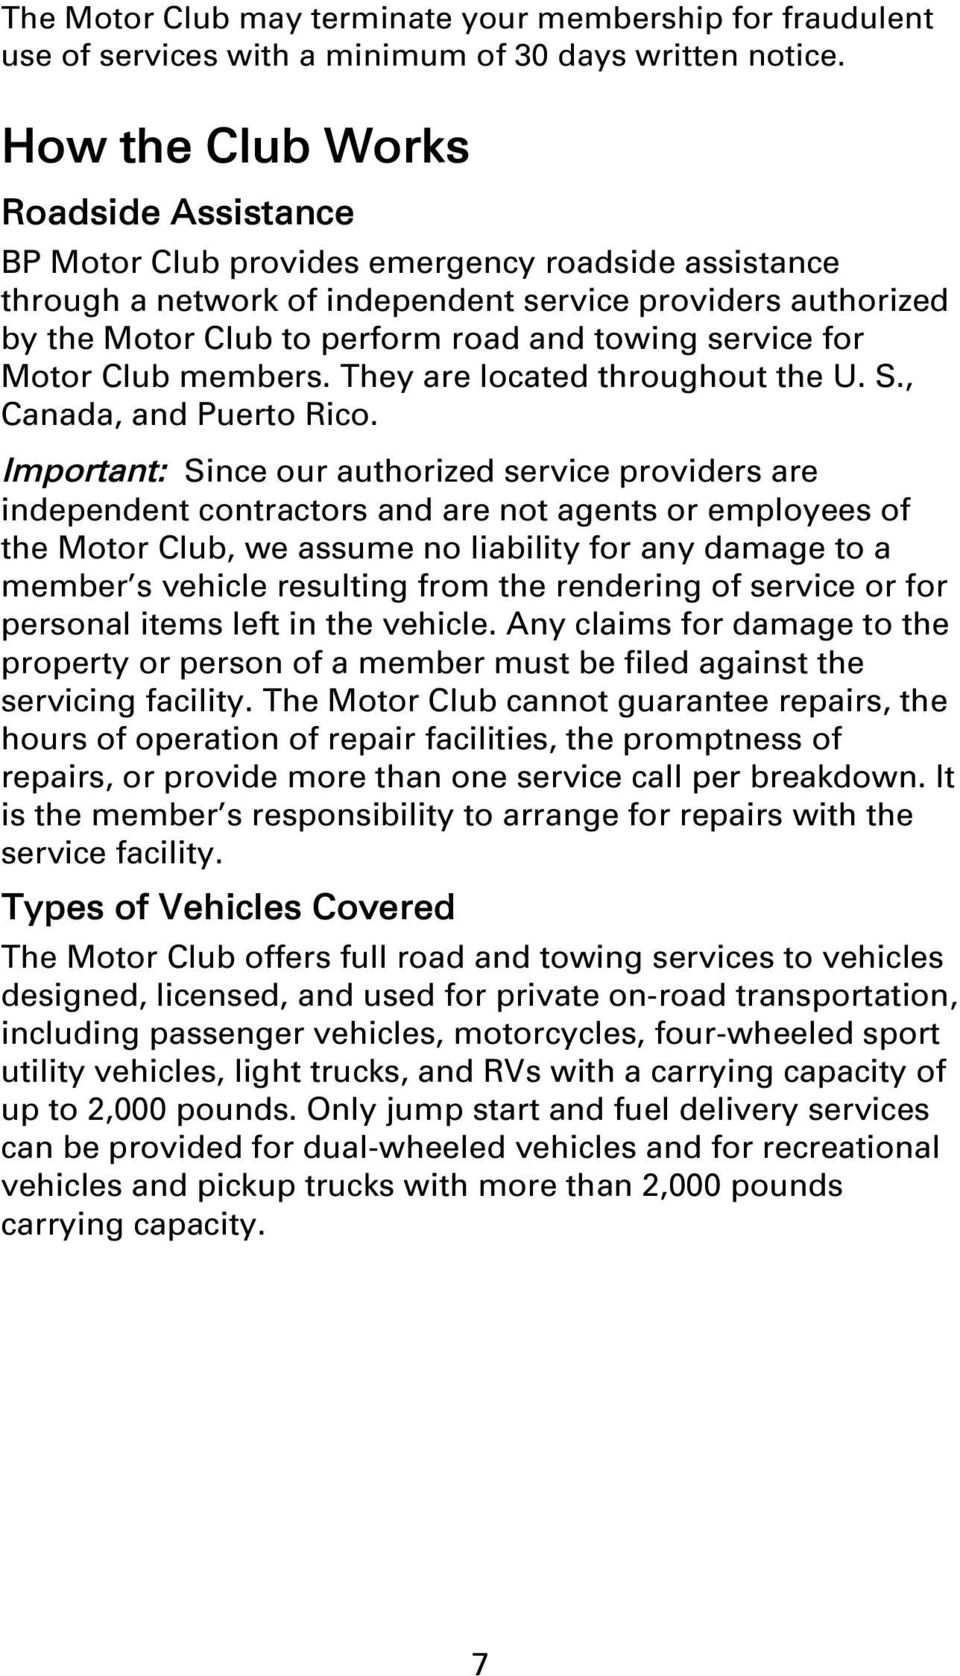 service for Motor Cub members. They are ocated throughout the U. S., Canada, and Puerto Rico.